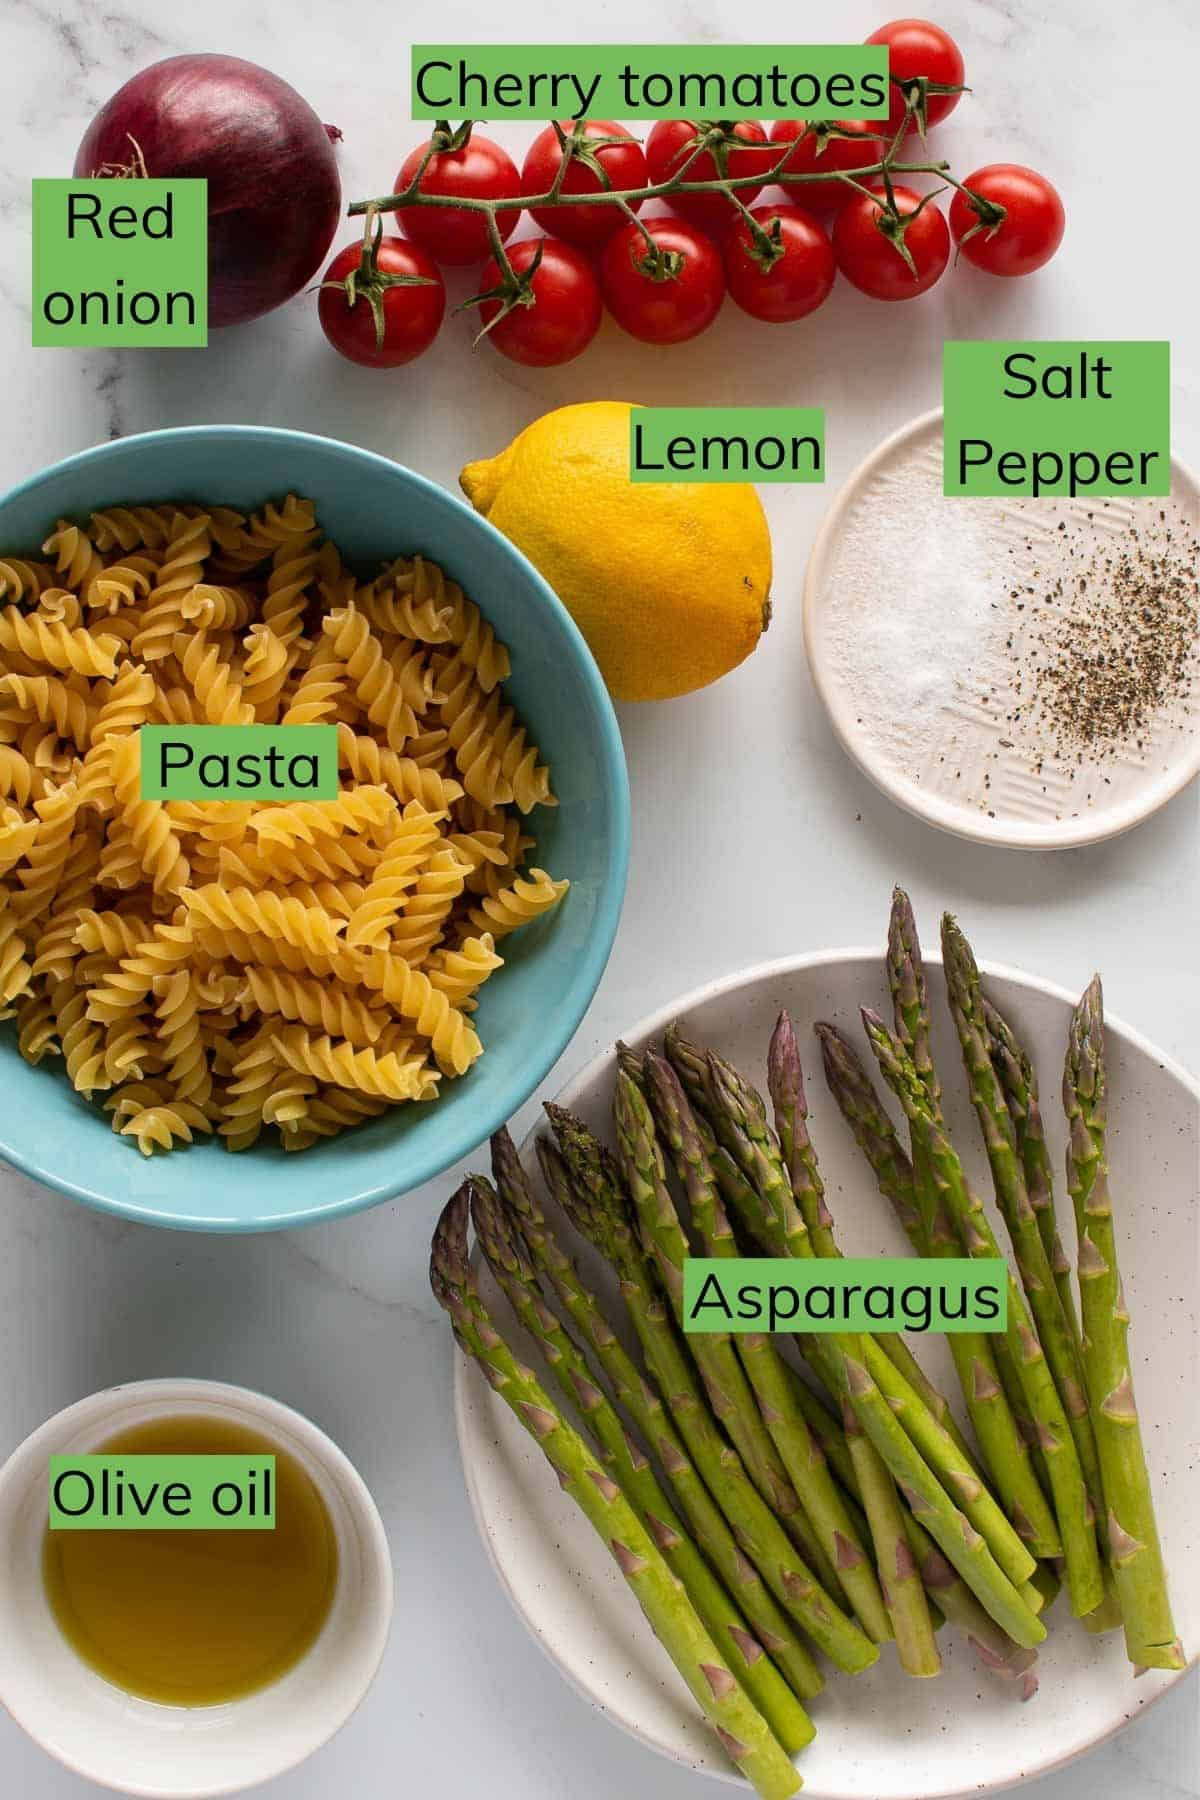 Ingredients required for asparagus pasta salad laid out on a table.